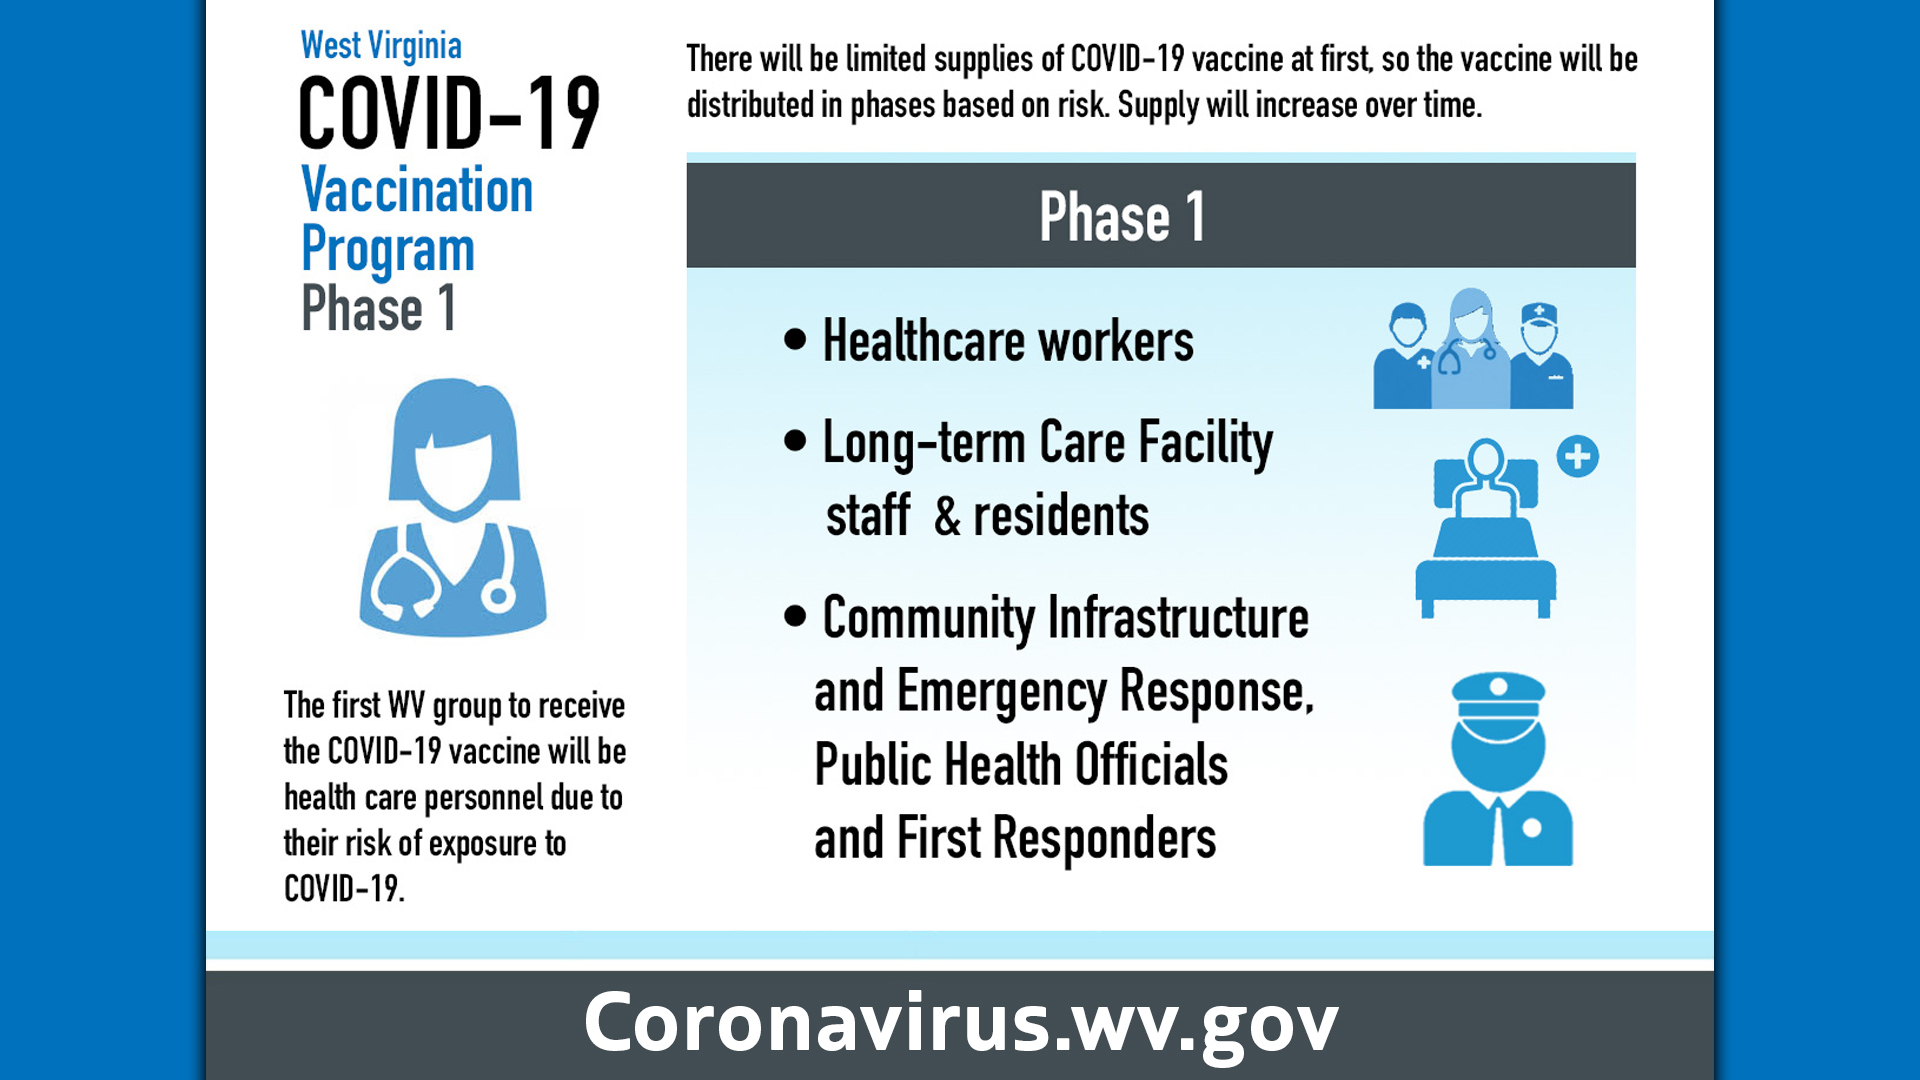 Covid-19 Update: Gov. Justice Announces Initial Vaccine